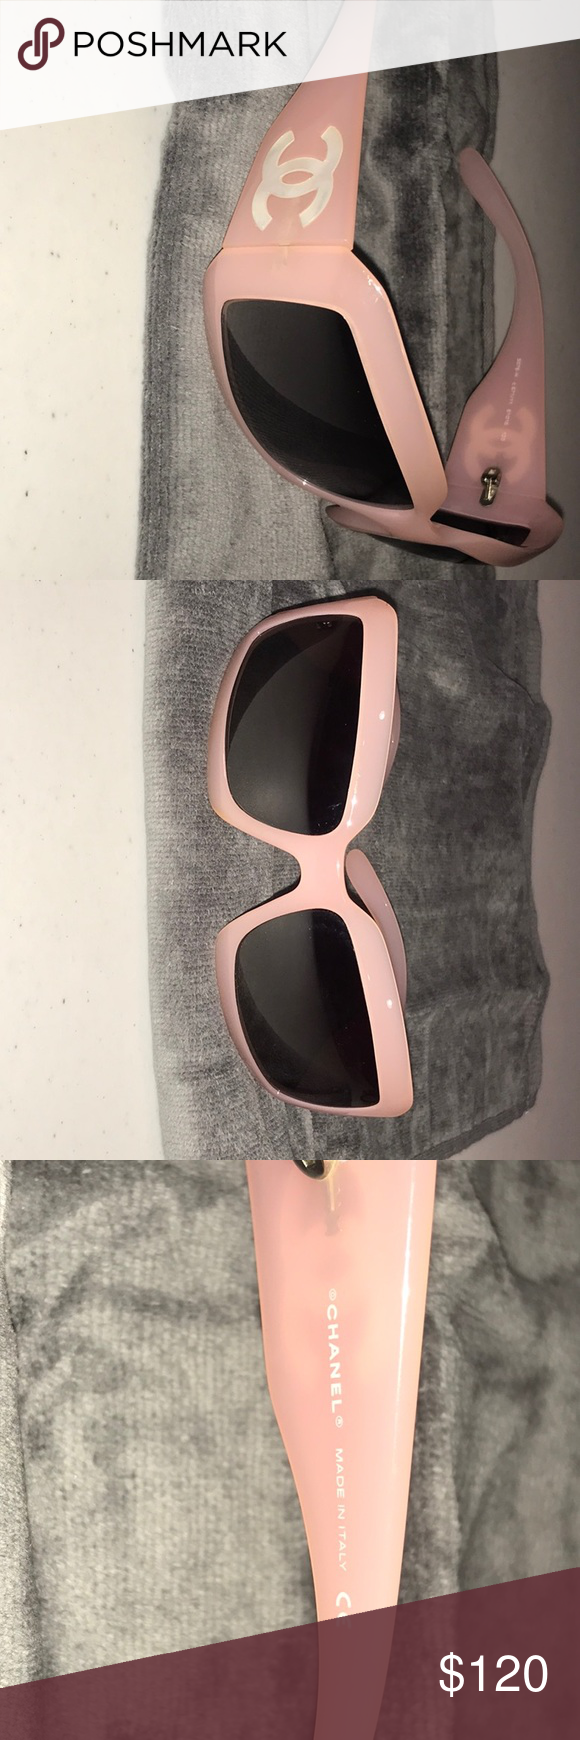 06374559fbb Chanel Sunglasses Chanel 5076 - H Pink with mother of pearl logo. Replaced  scratched lenses